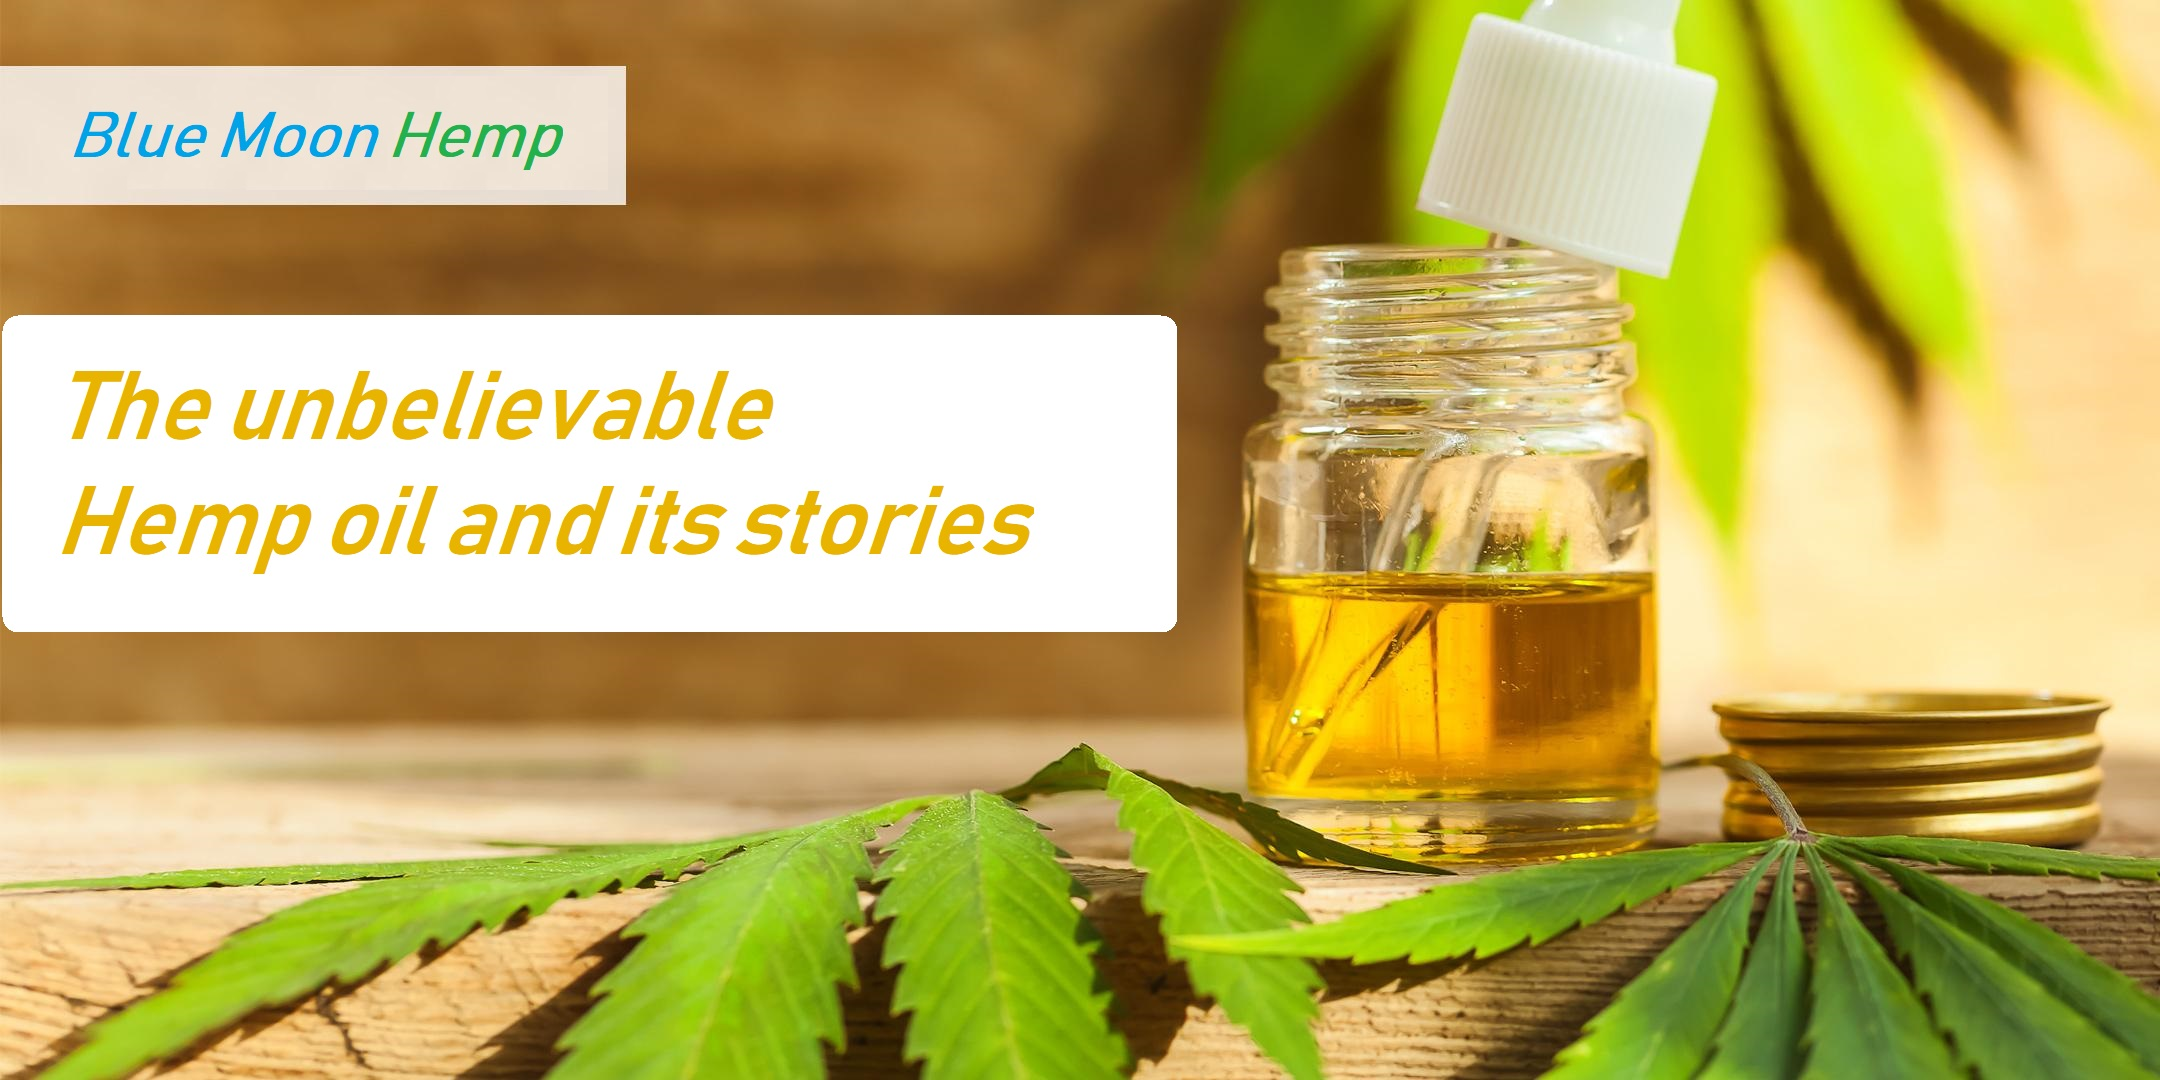 The-unbelievable-Hemp-oil-and-its-stories